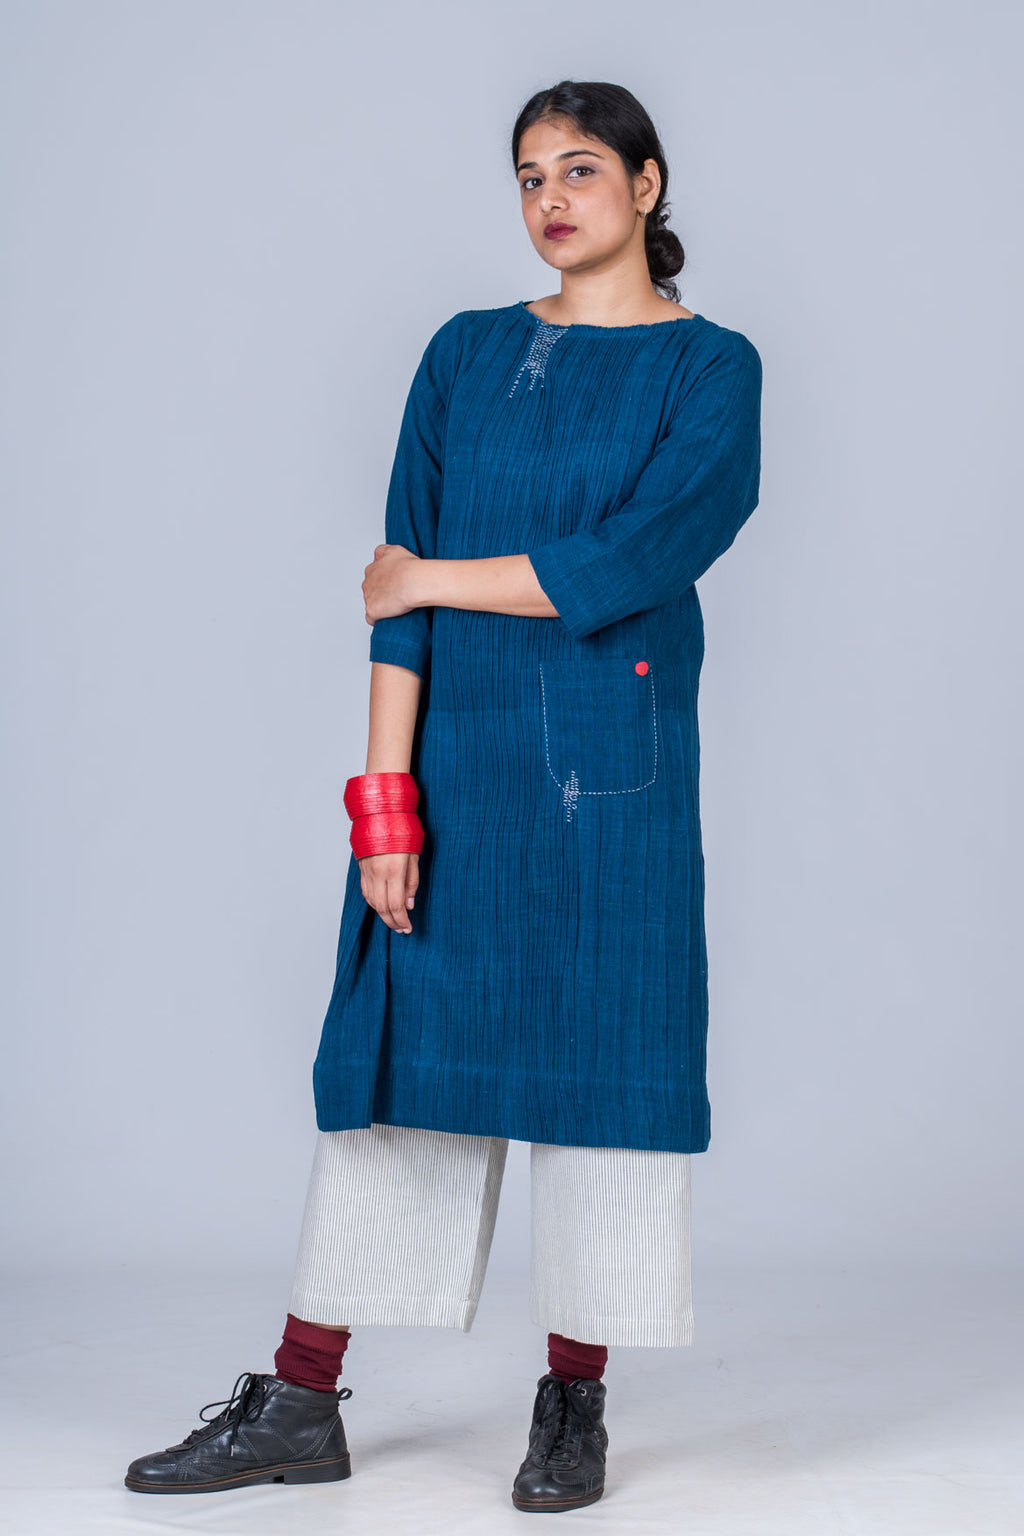 Natural Indigo Cotton pintuck dress - PARINA - Upasana Design Studio